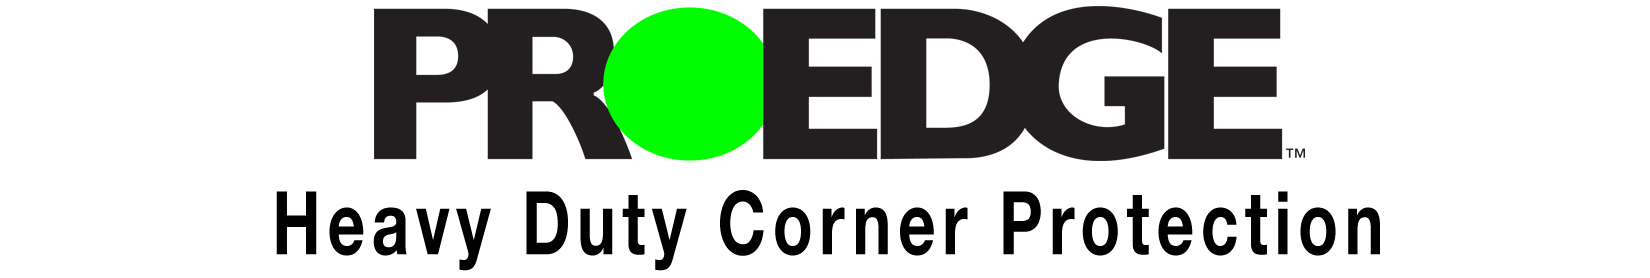 PROEdge - with Tagline.png